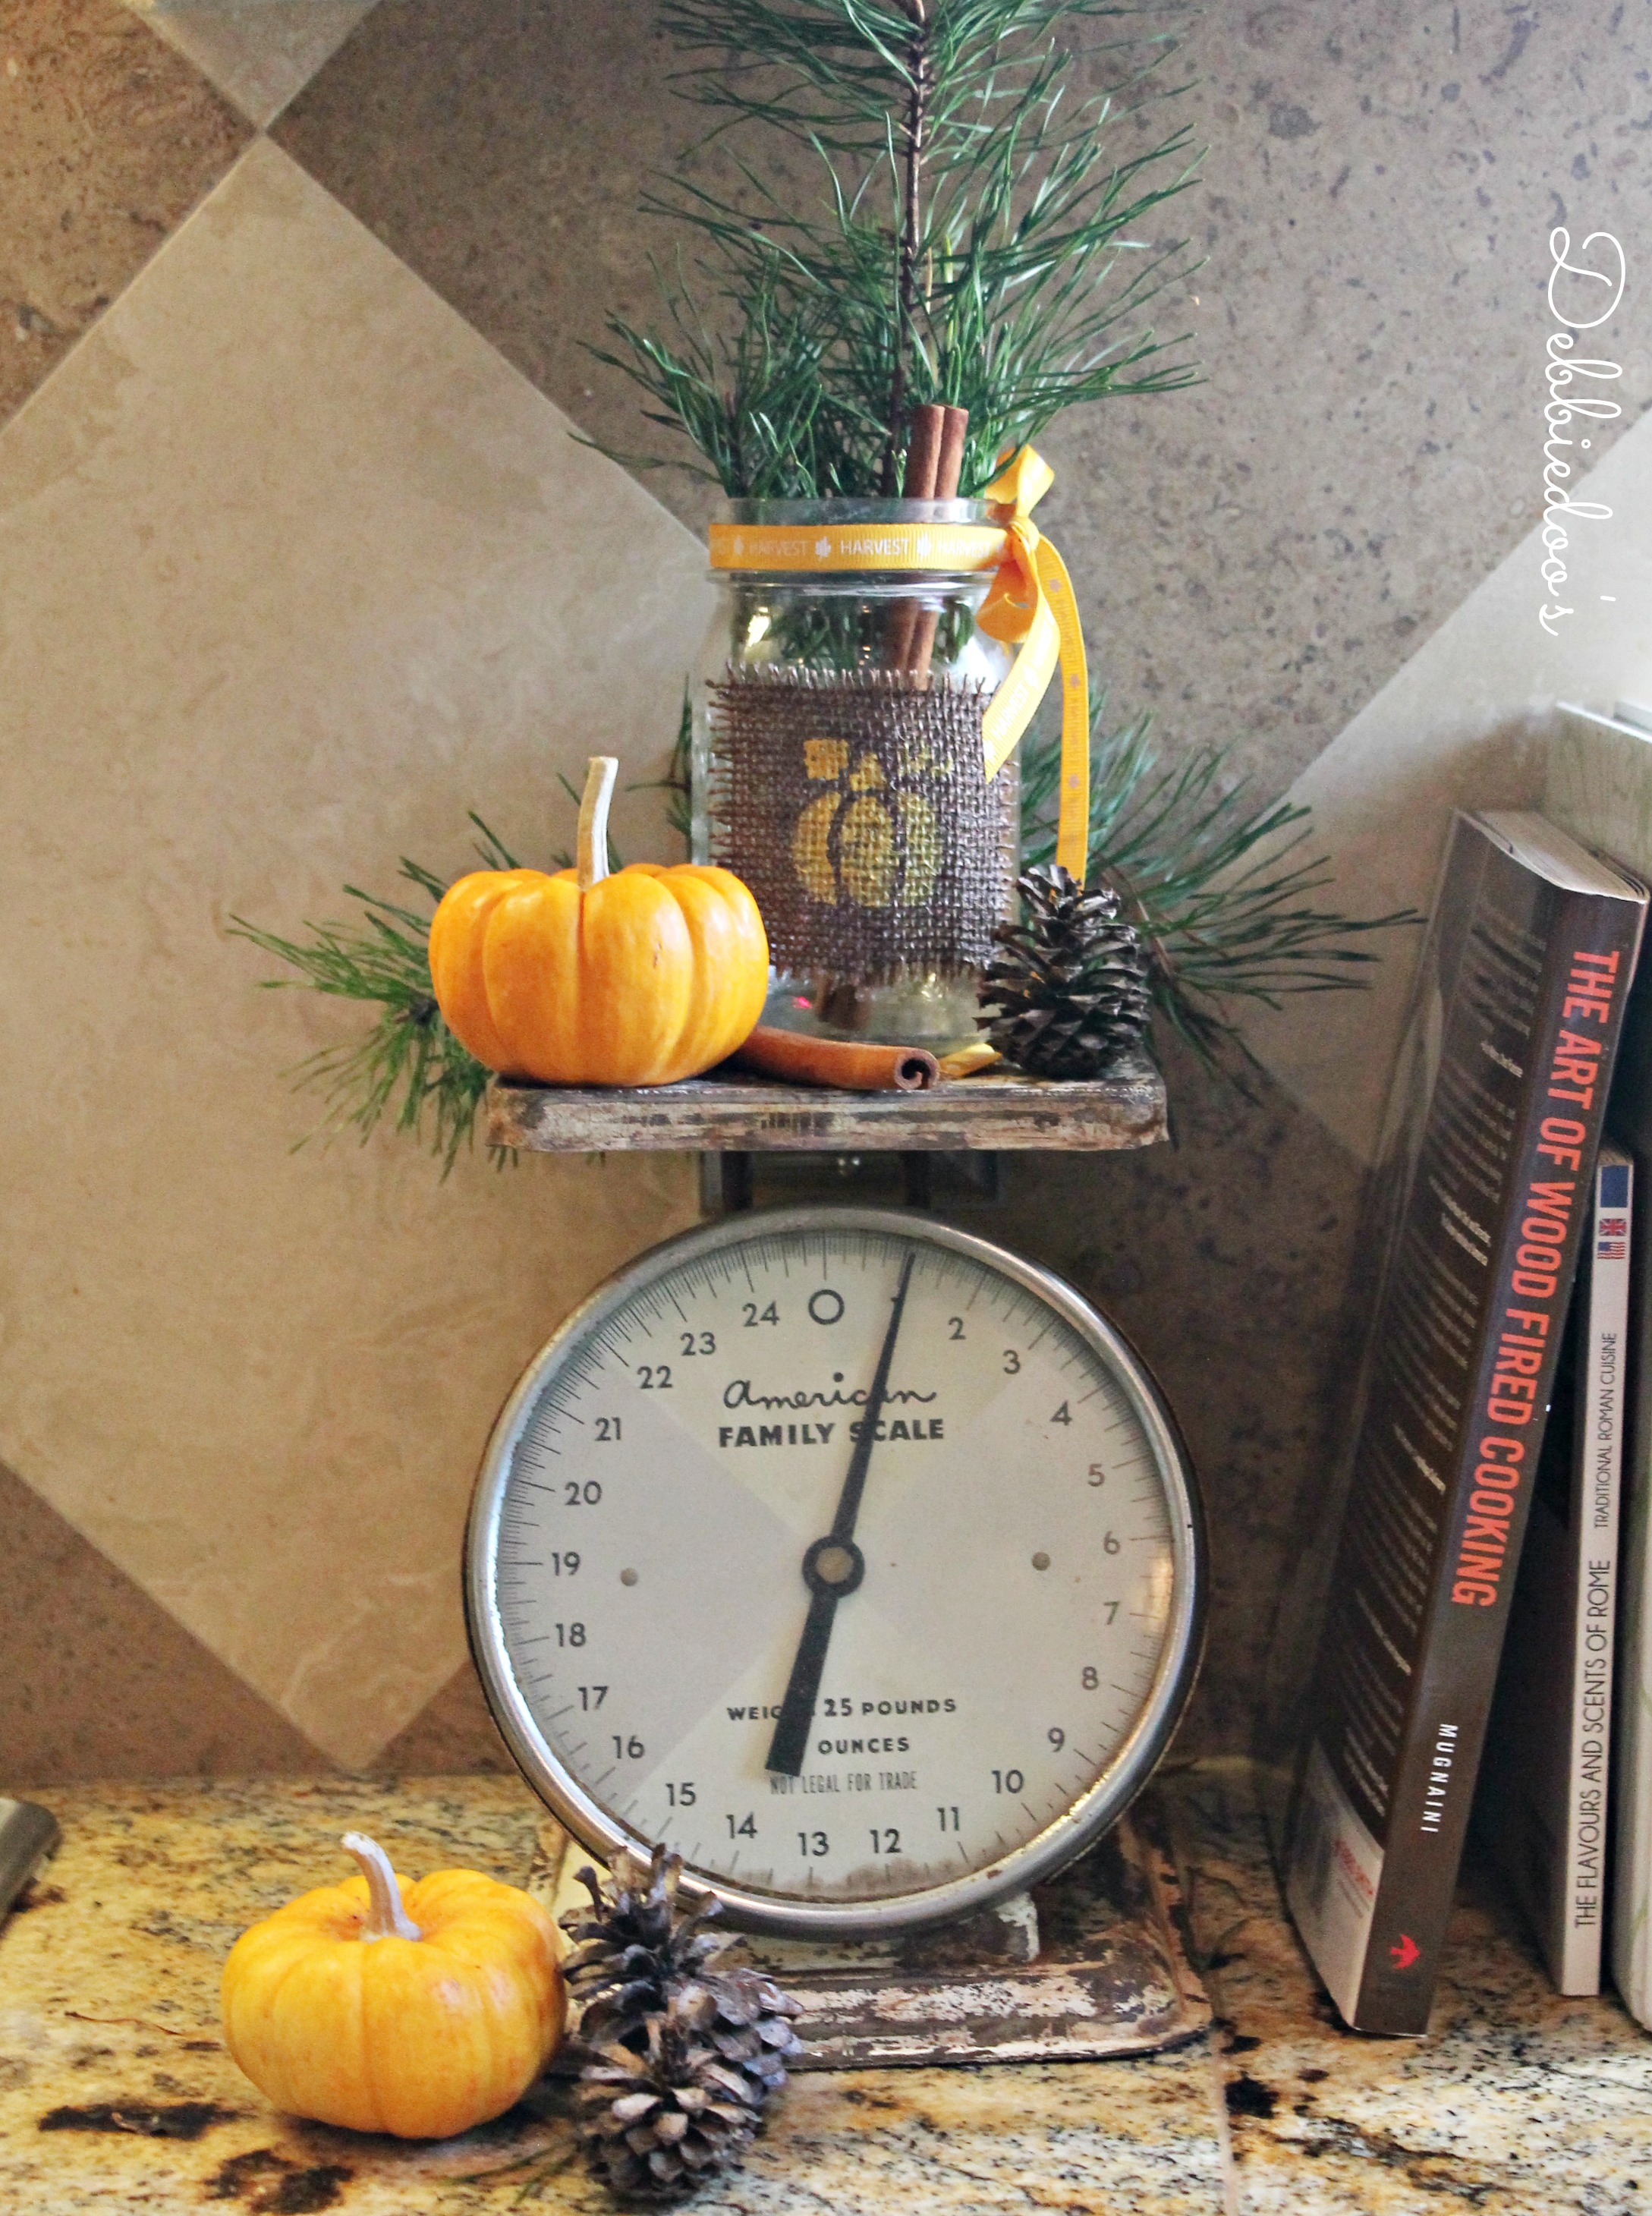 Fall mason jar on vintage scale